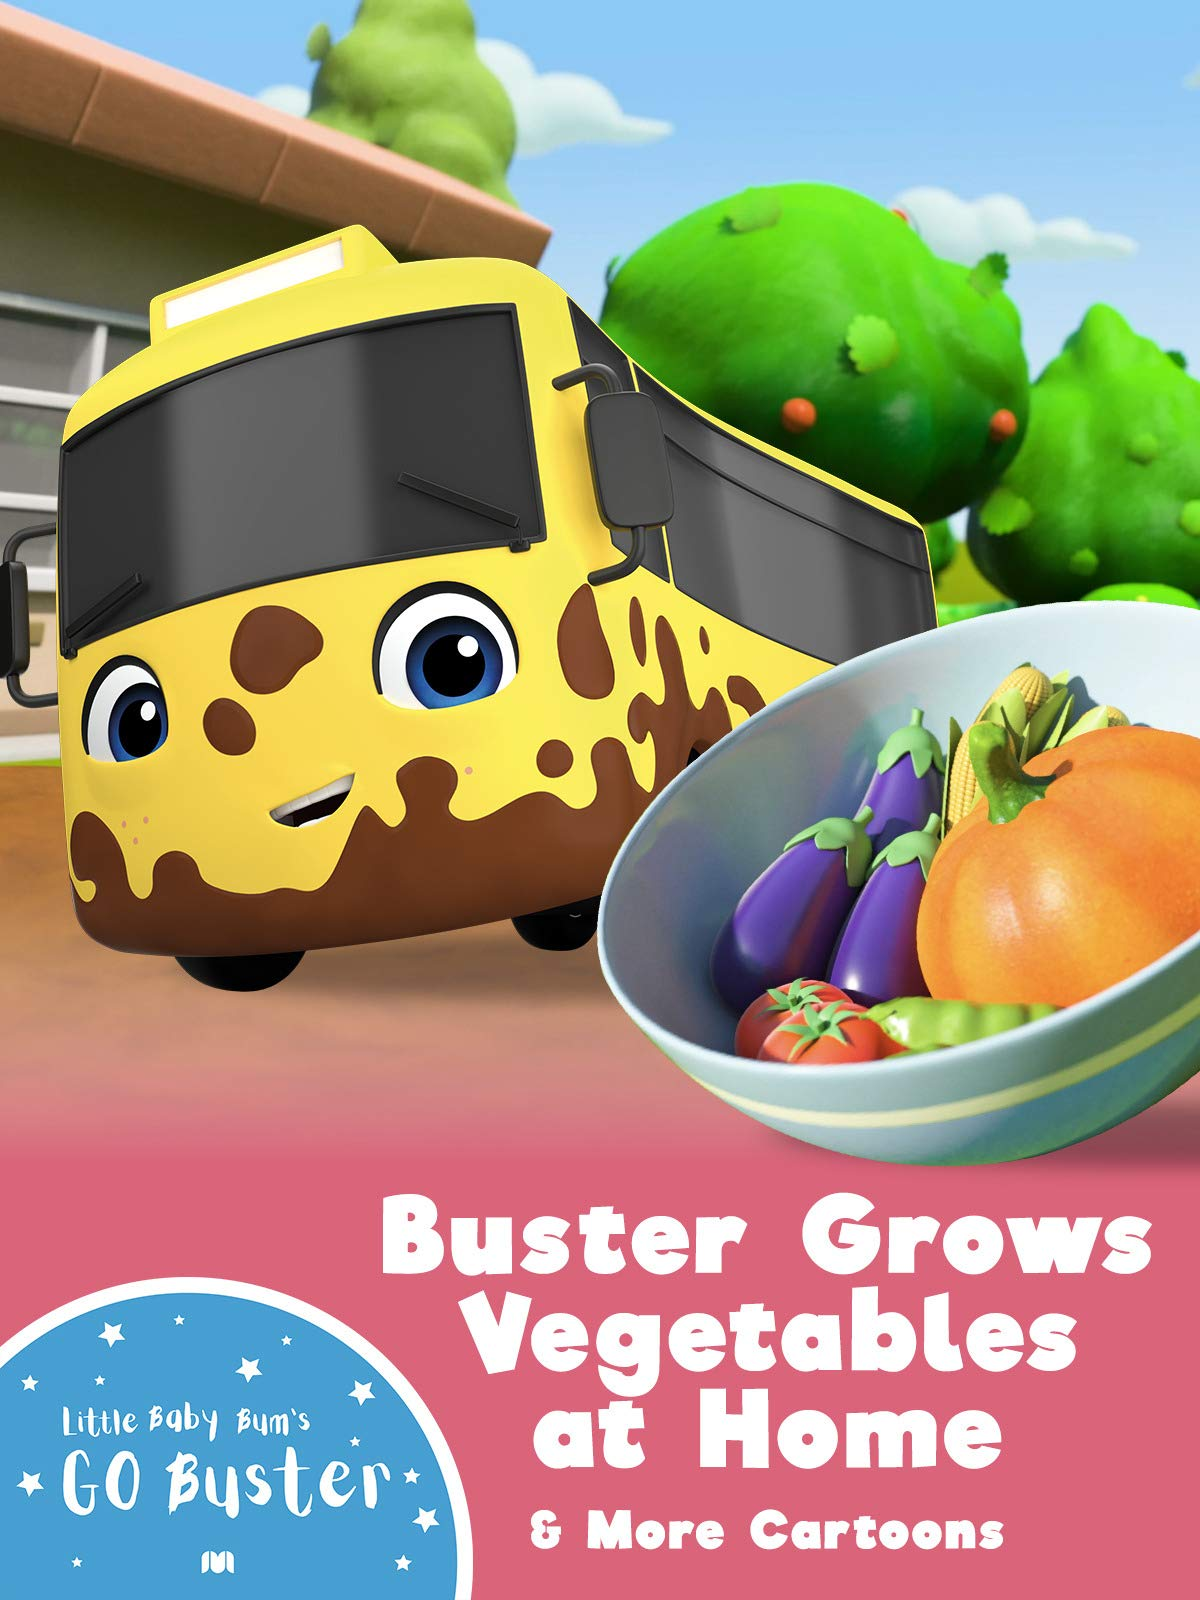 Go Buster - Buster Grows Vegetables at Home & More Cartoons